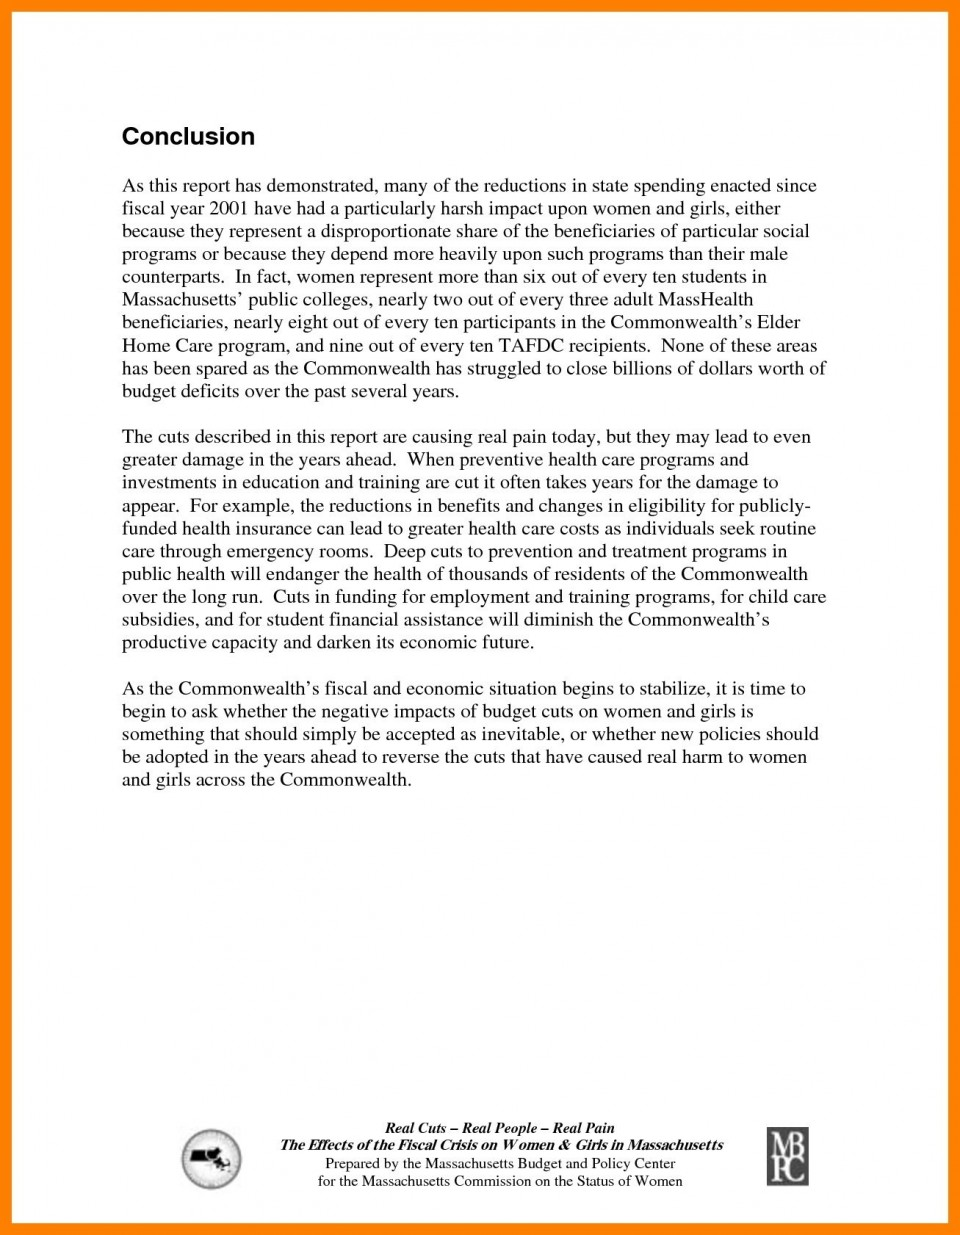 015 Research Paper Example Of Introduction In Conclusion Essay For An Argumentative Pdf Pare And Contrast P About Bullying Psychology Education Unique Business Cyberbullying 960